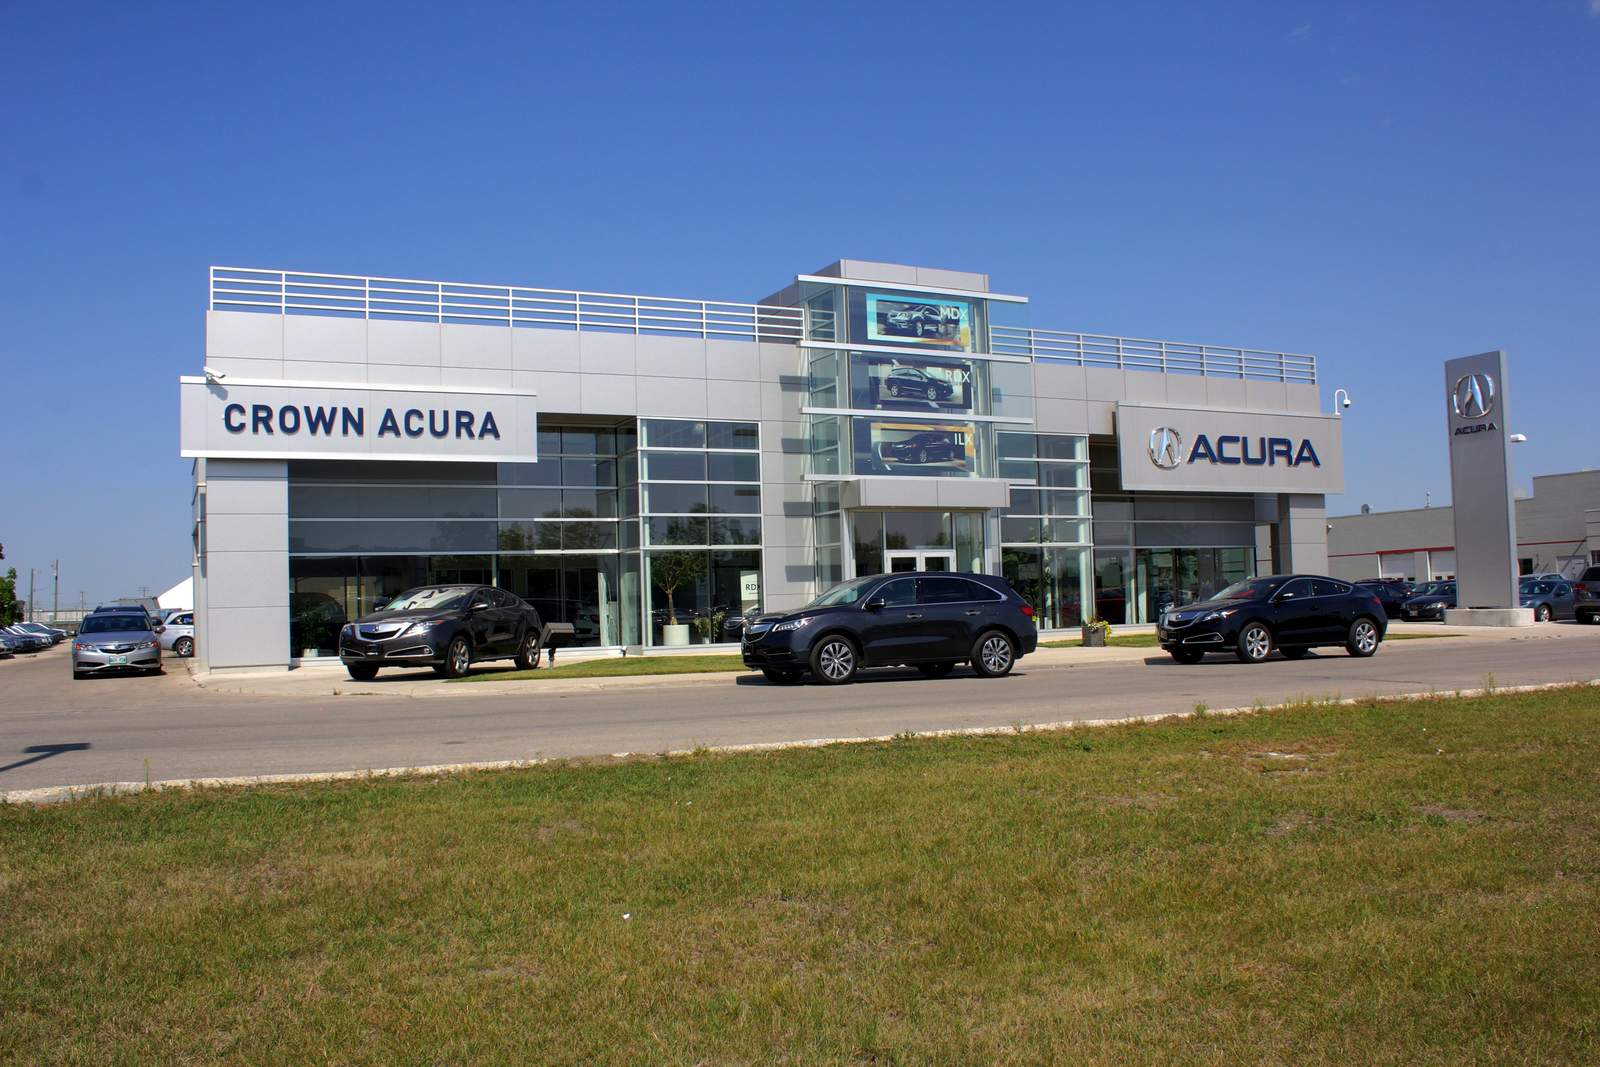 Crown Acura Winnipeg-0106